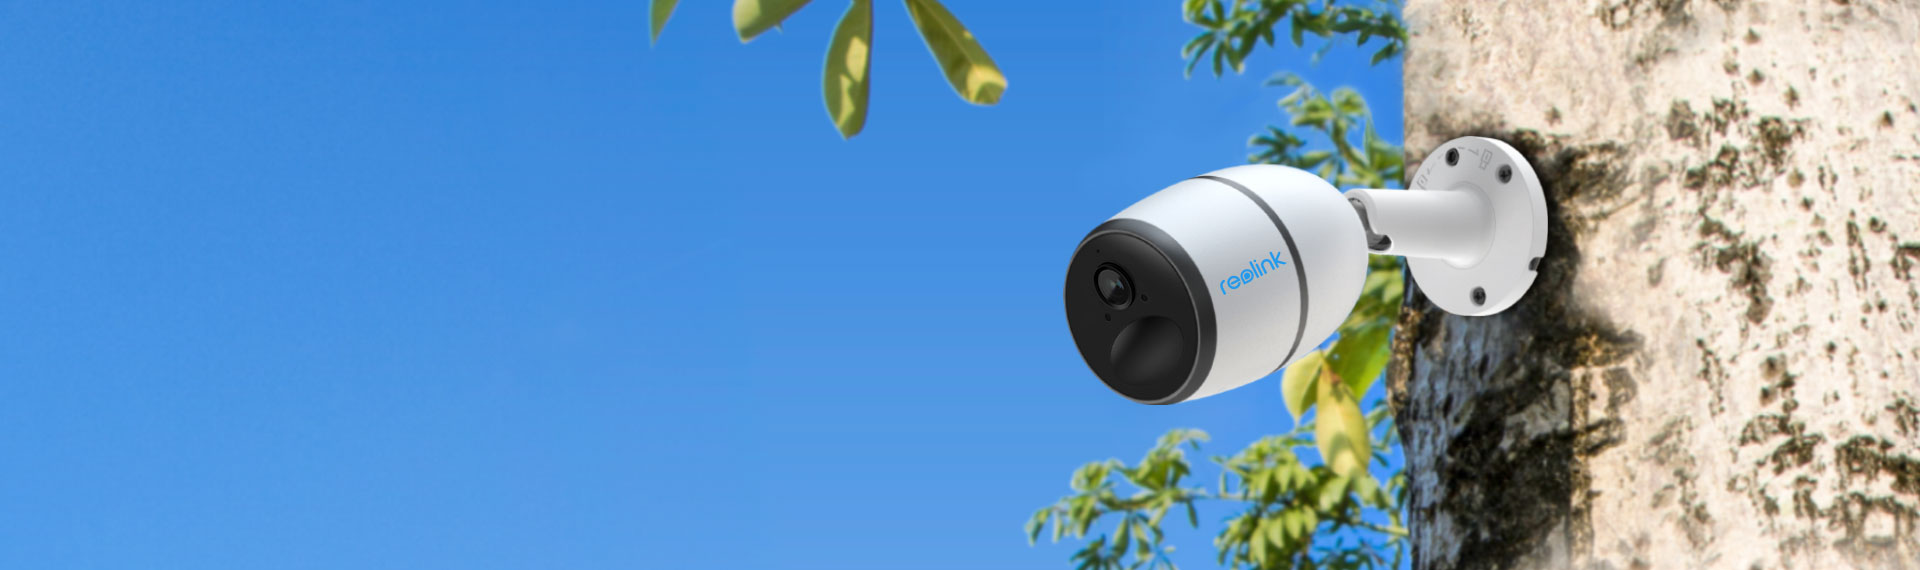 product reolink go banner reolink go wire free 4g lte mobile security camera